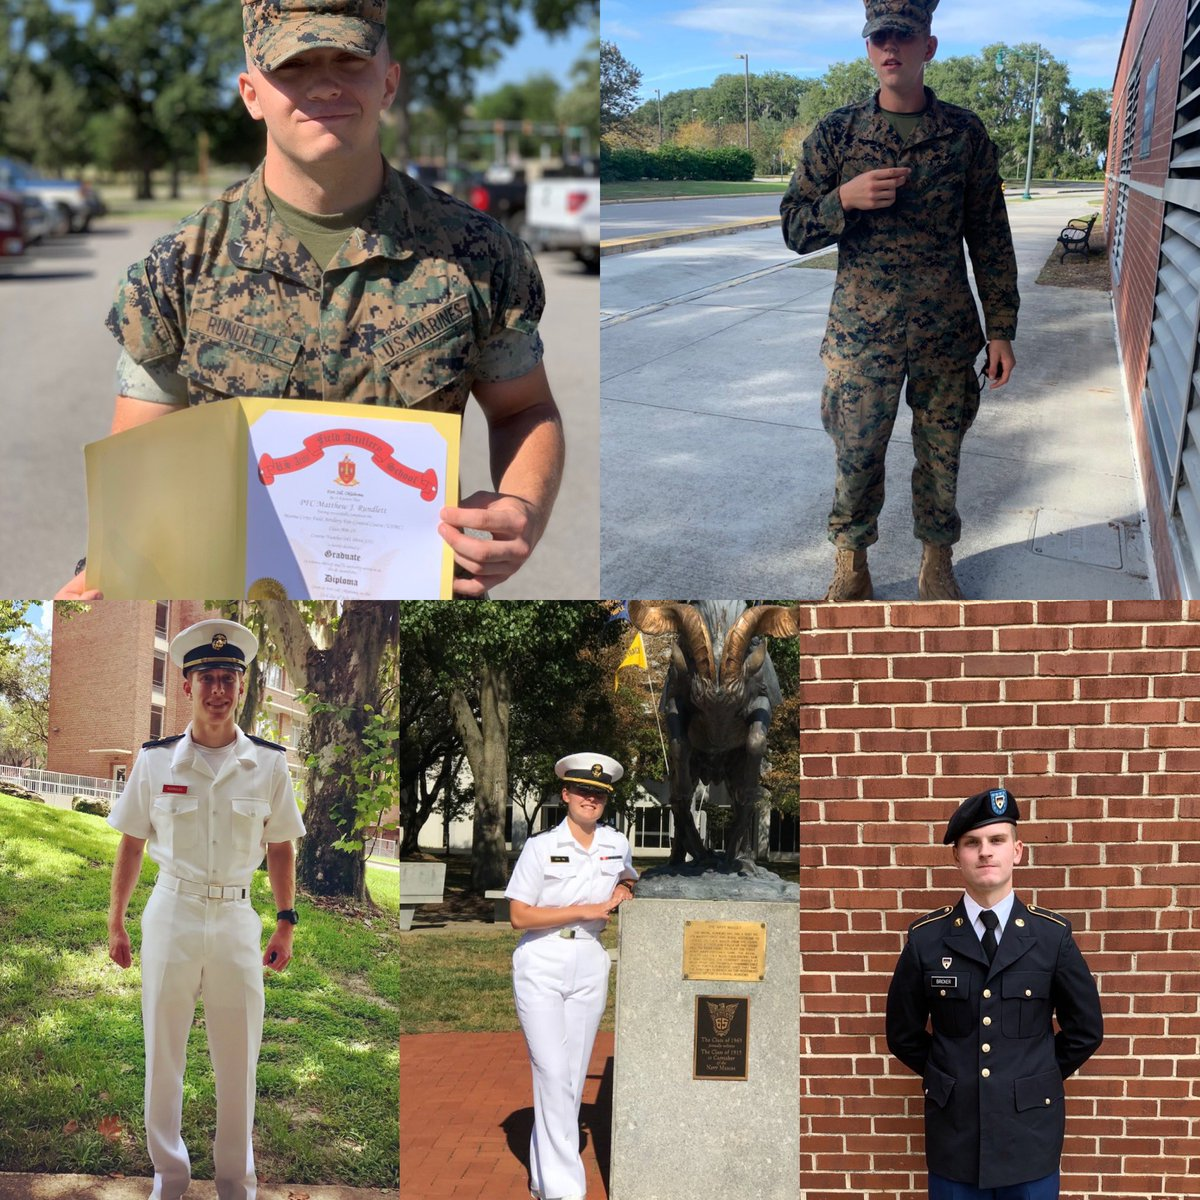 test Twitter Media - We  are🙏for all veterans & those who have recently traded Wildcat uniforms for those of the armed forces. LCpl M. Rundlett Currently Serv. USMC, Pvt N. Grader Currently Serv. USMCA.Rodriguez MIDN US Marine Corp UFL, C.Leal MIDN US Naval Academy, A. Bricker Army ROTC Cadet PSU https://t.co/Z2NjpadGin